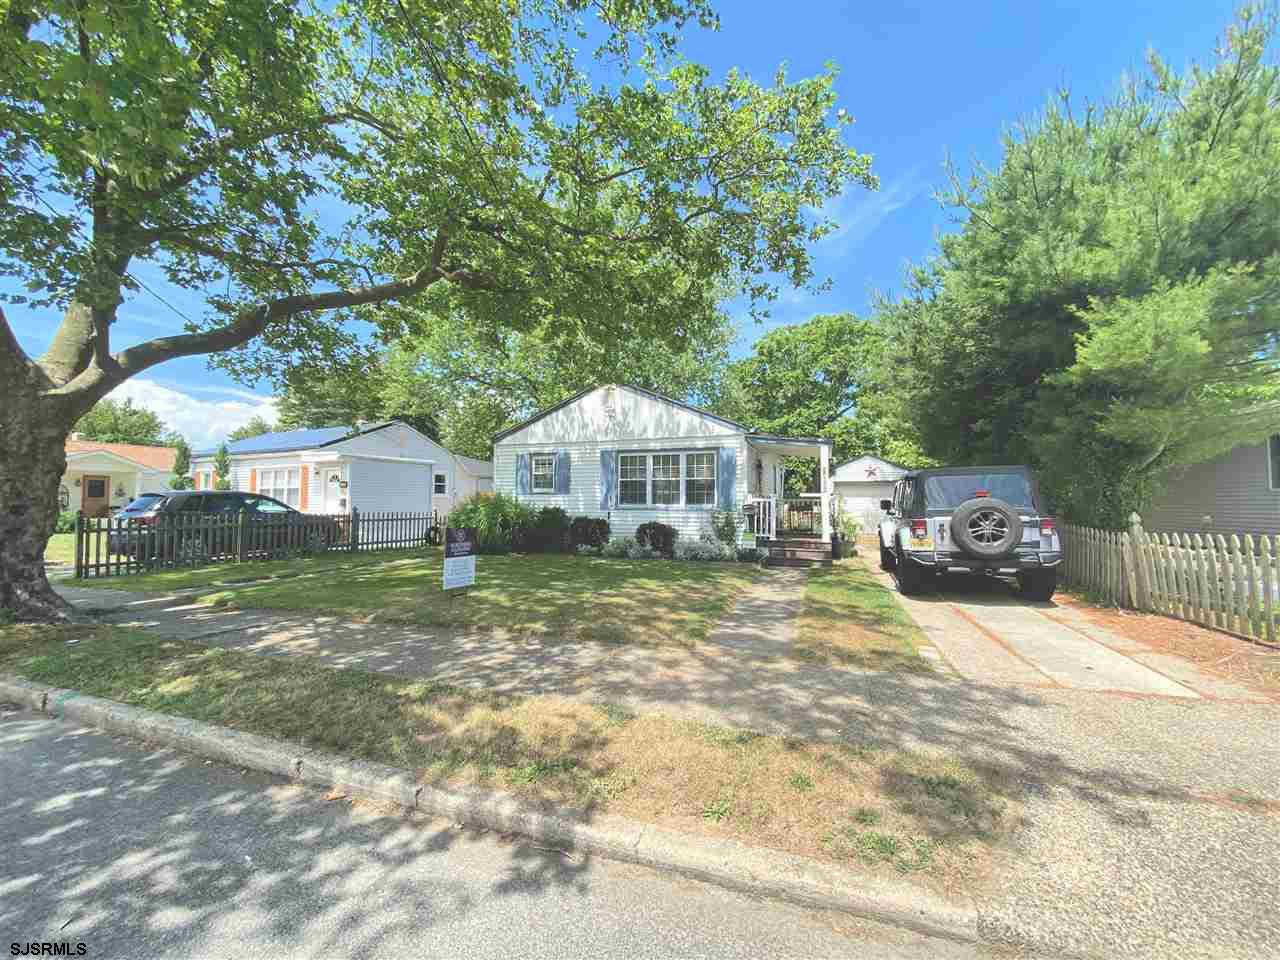 **NEW PRICE!** ADORABLE MOVE-IN READY HOME WITH HUGE YARD!! This lovely two bedroom home features ha